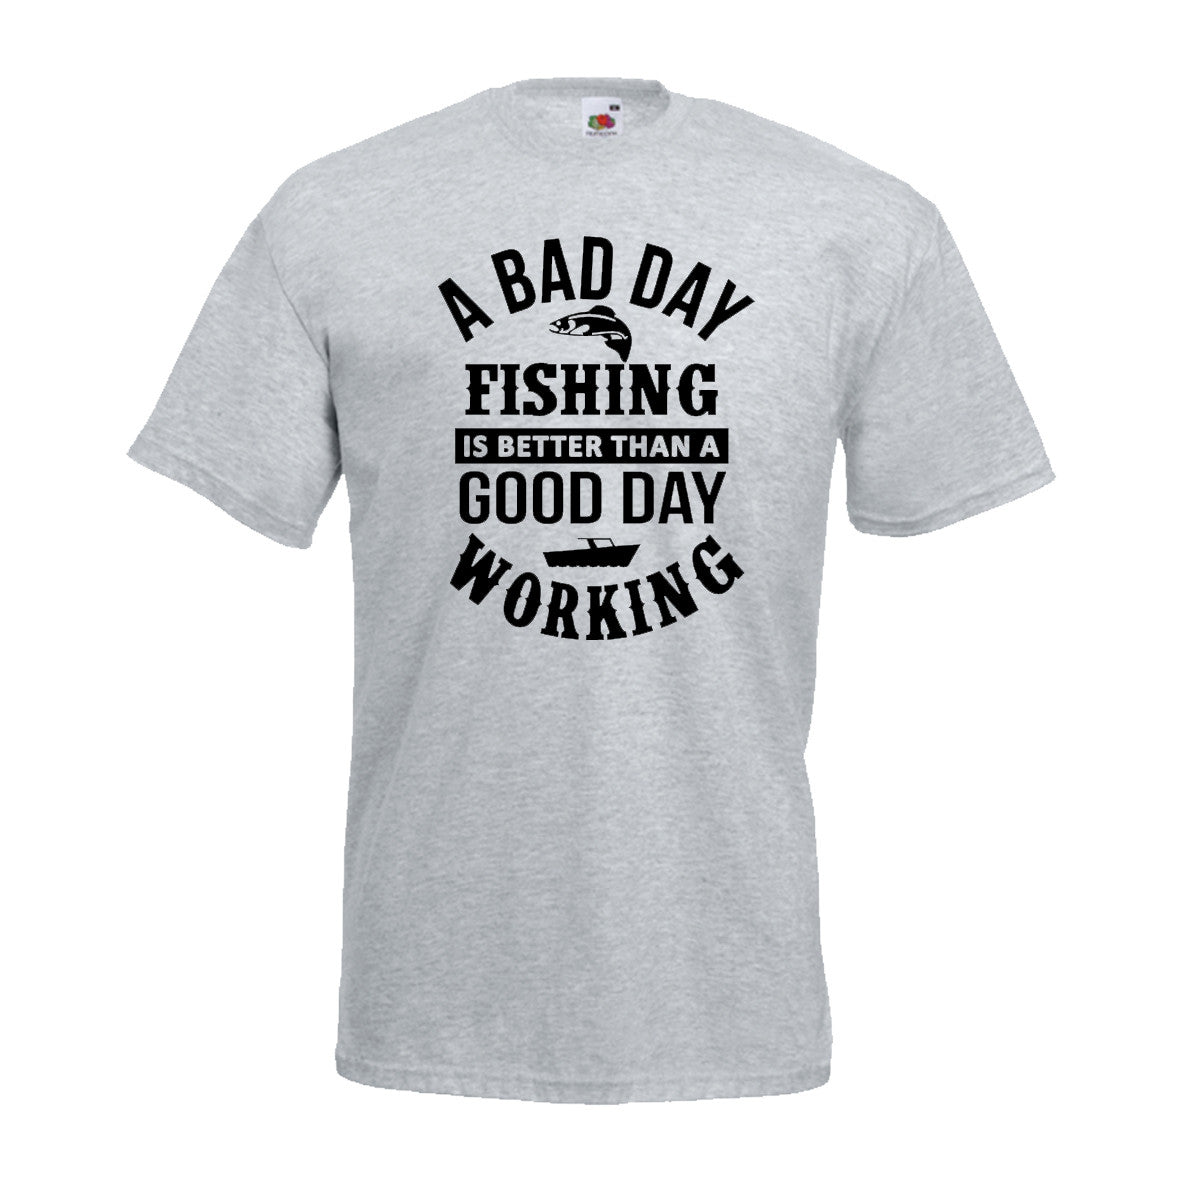 A Bad Day Fishing is Better Than a Good Day Working